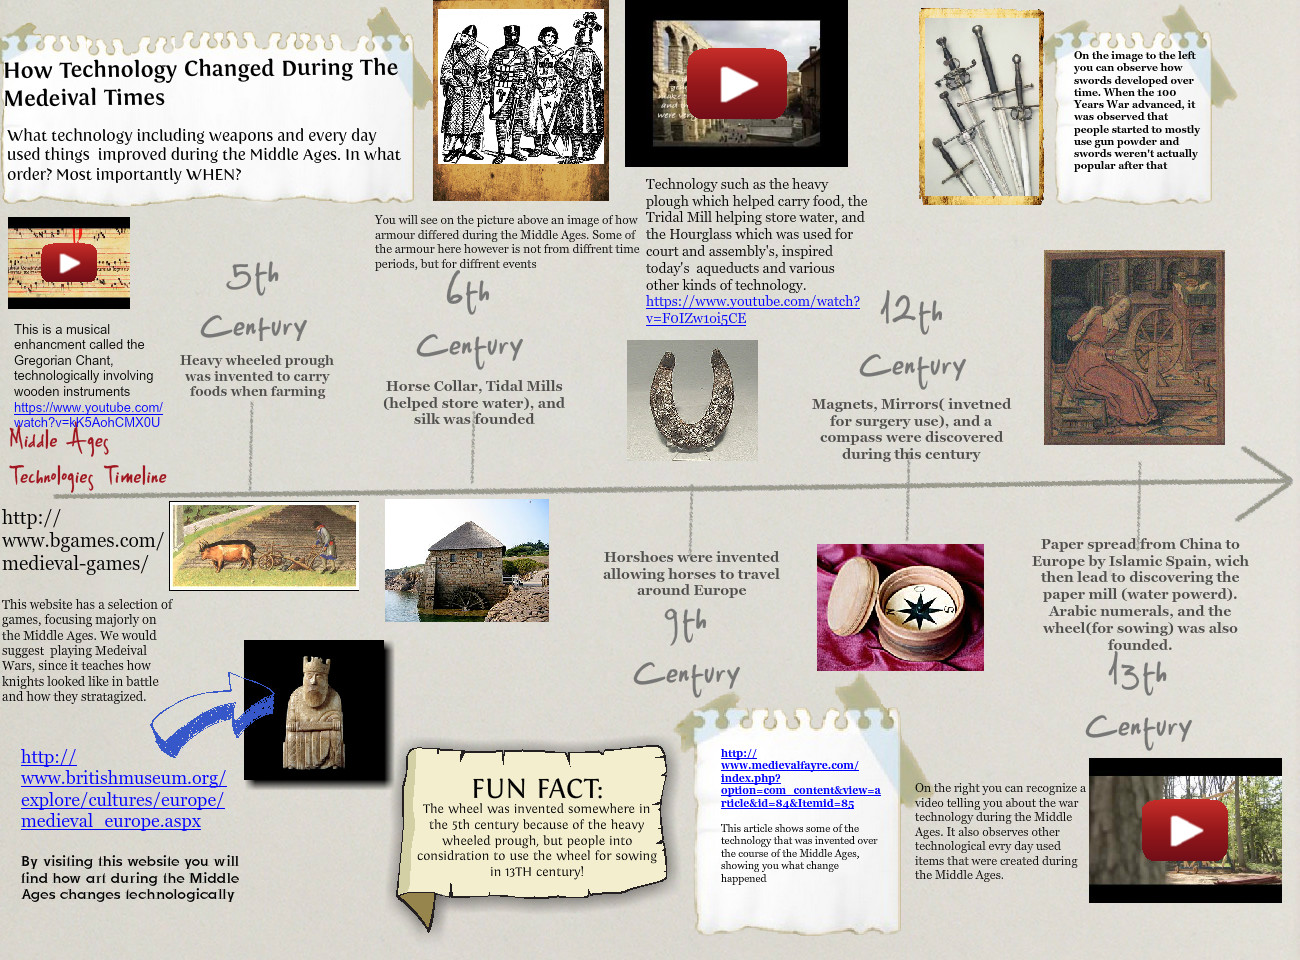 How Technology Changed During The Medieval Times